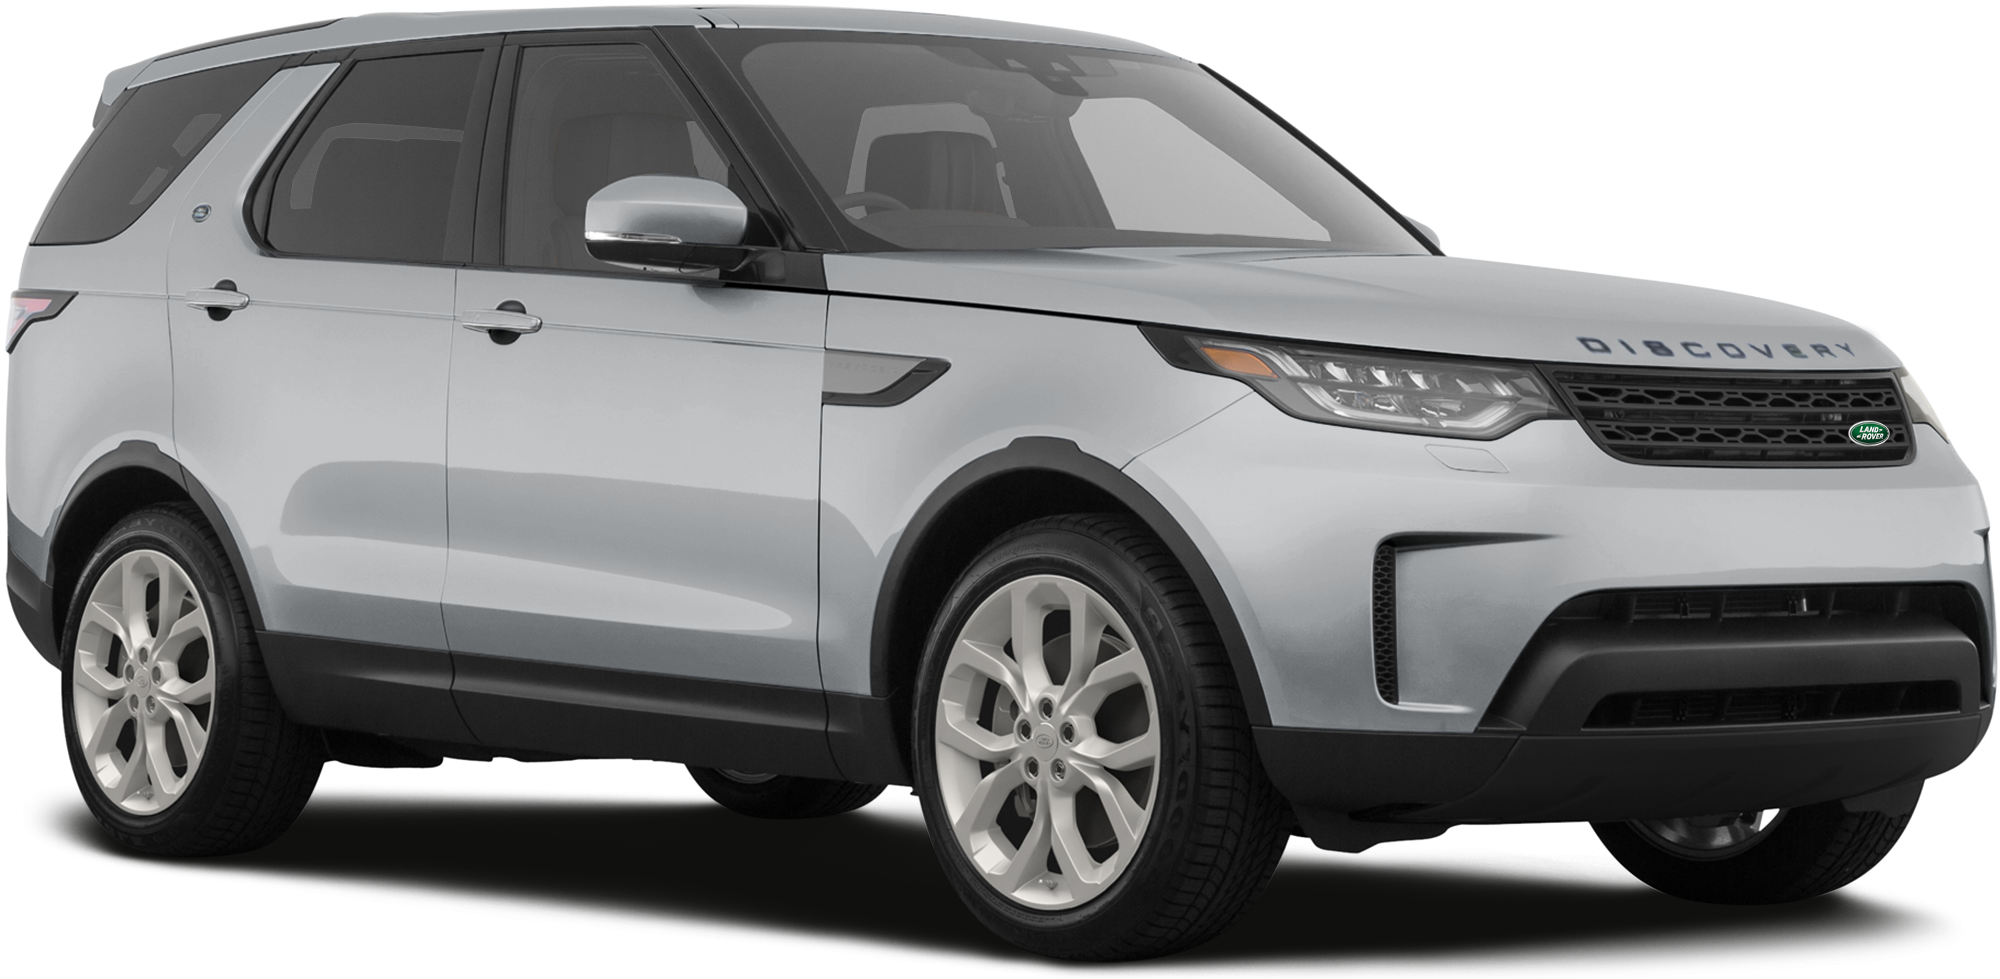 2019 Land Rover Discovery Incentives, Specials & Offers In